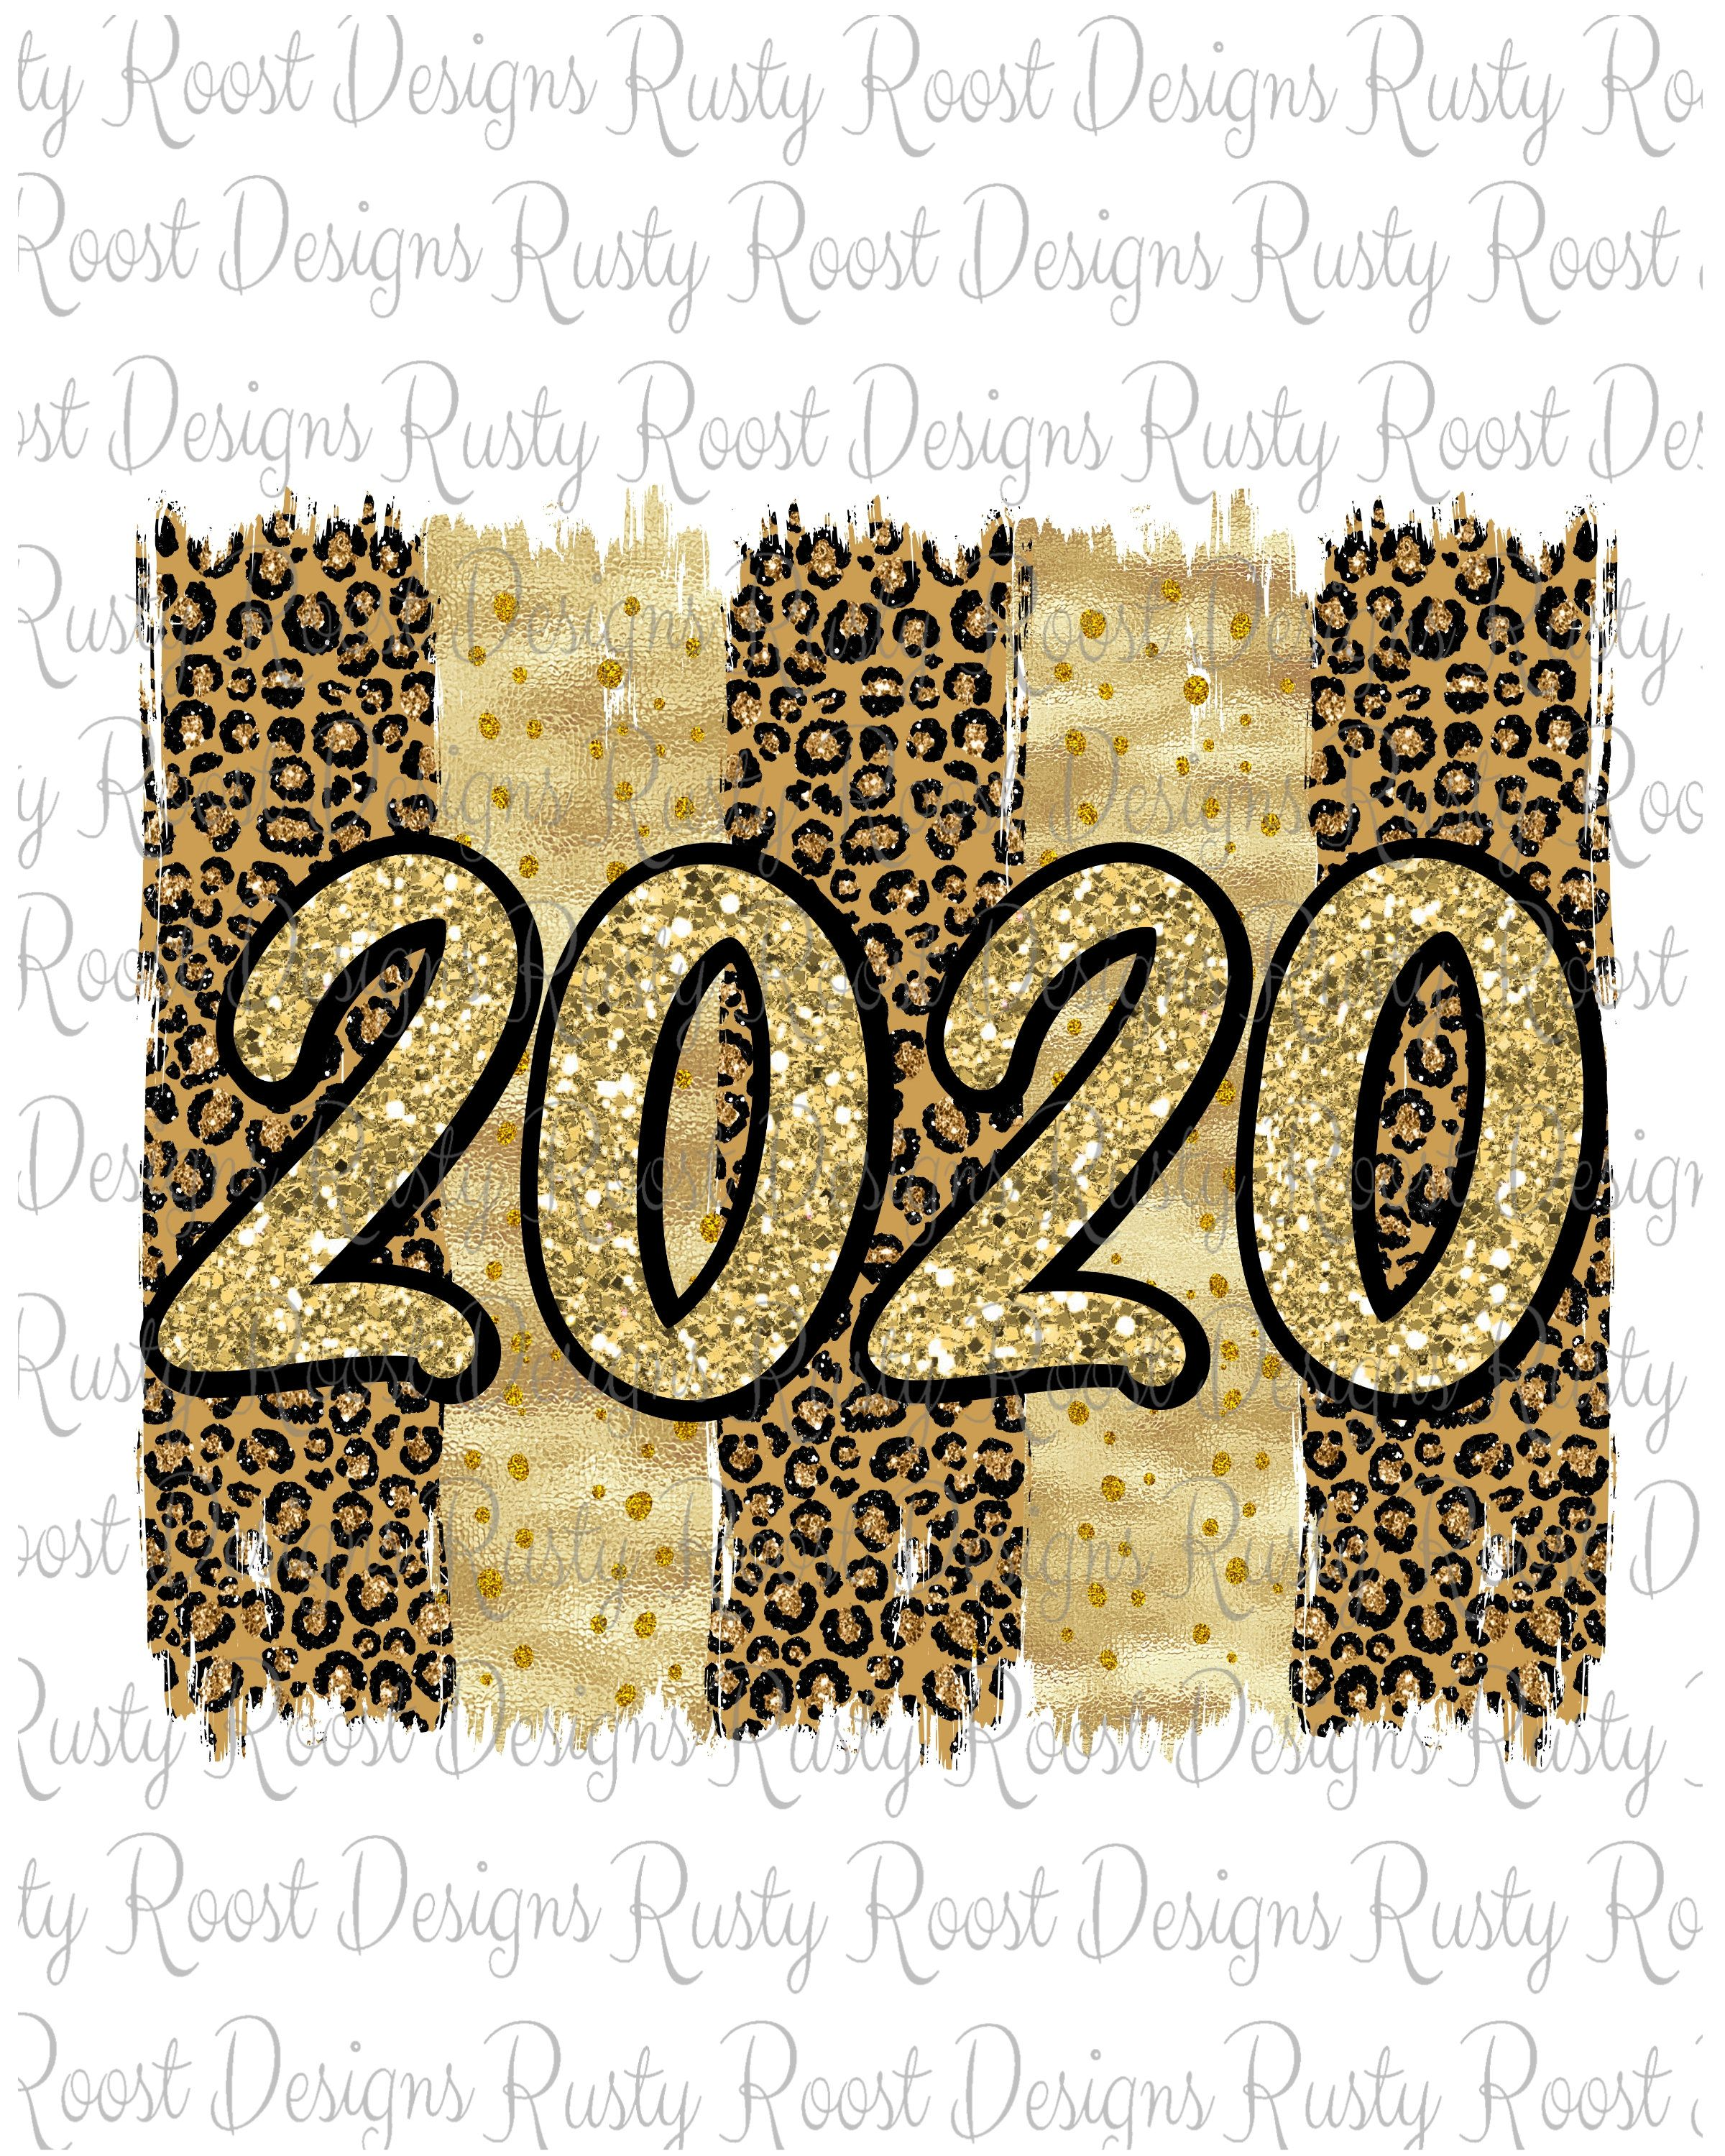 Happy New Year Png New Year Sublimation Designs Downloads Etsy Happy New Year Png Happy New Year 2020 Png Christmas Sublimation